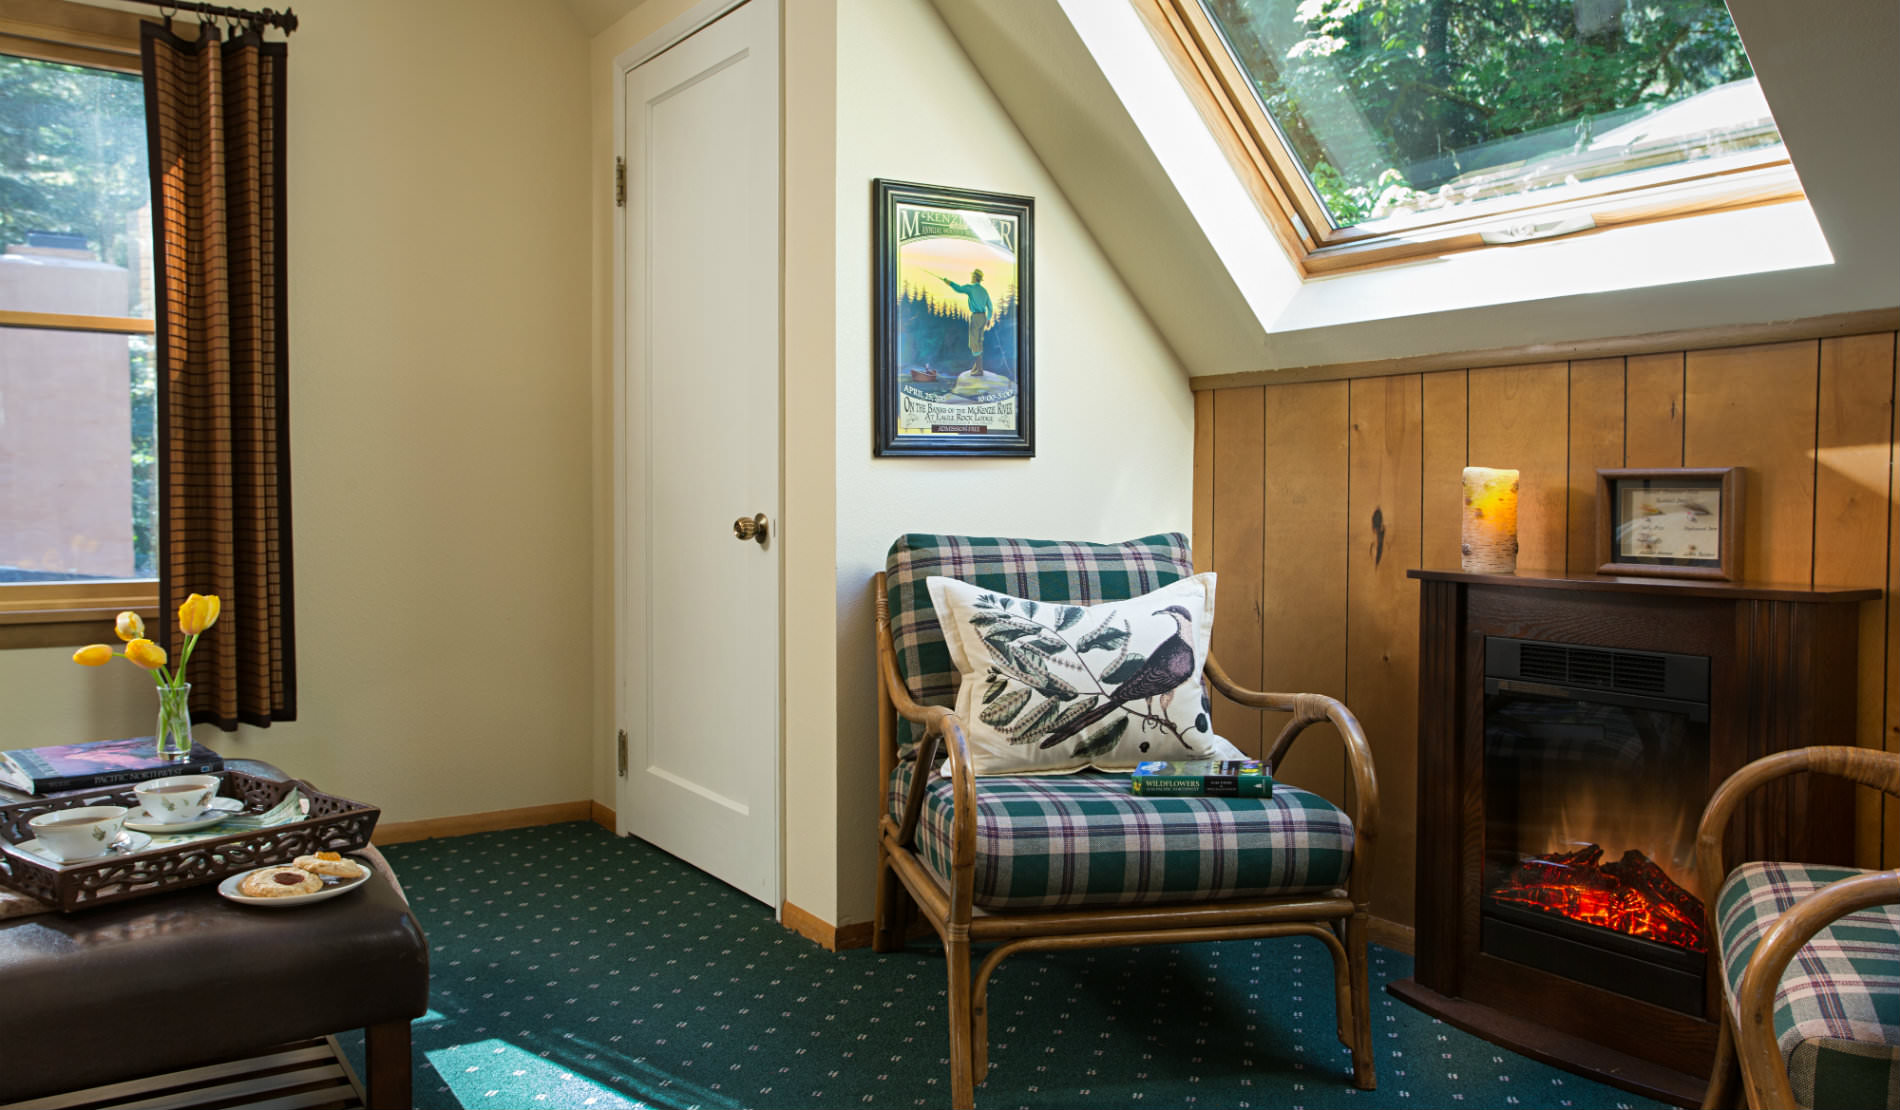 Skylight over plaid chairs with green carpet and large window with brown curtains.